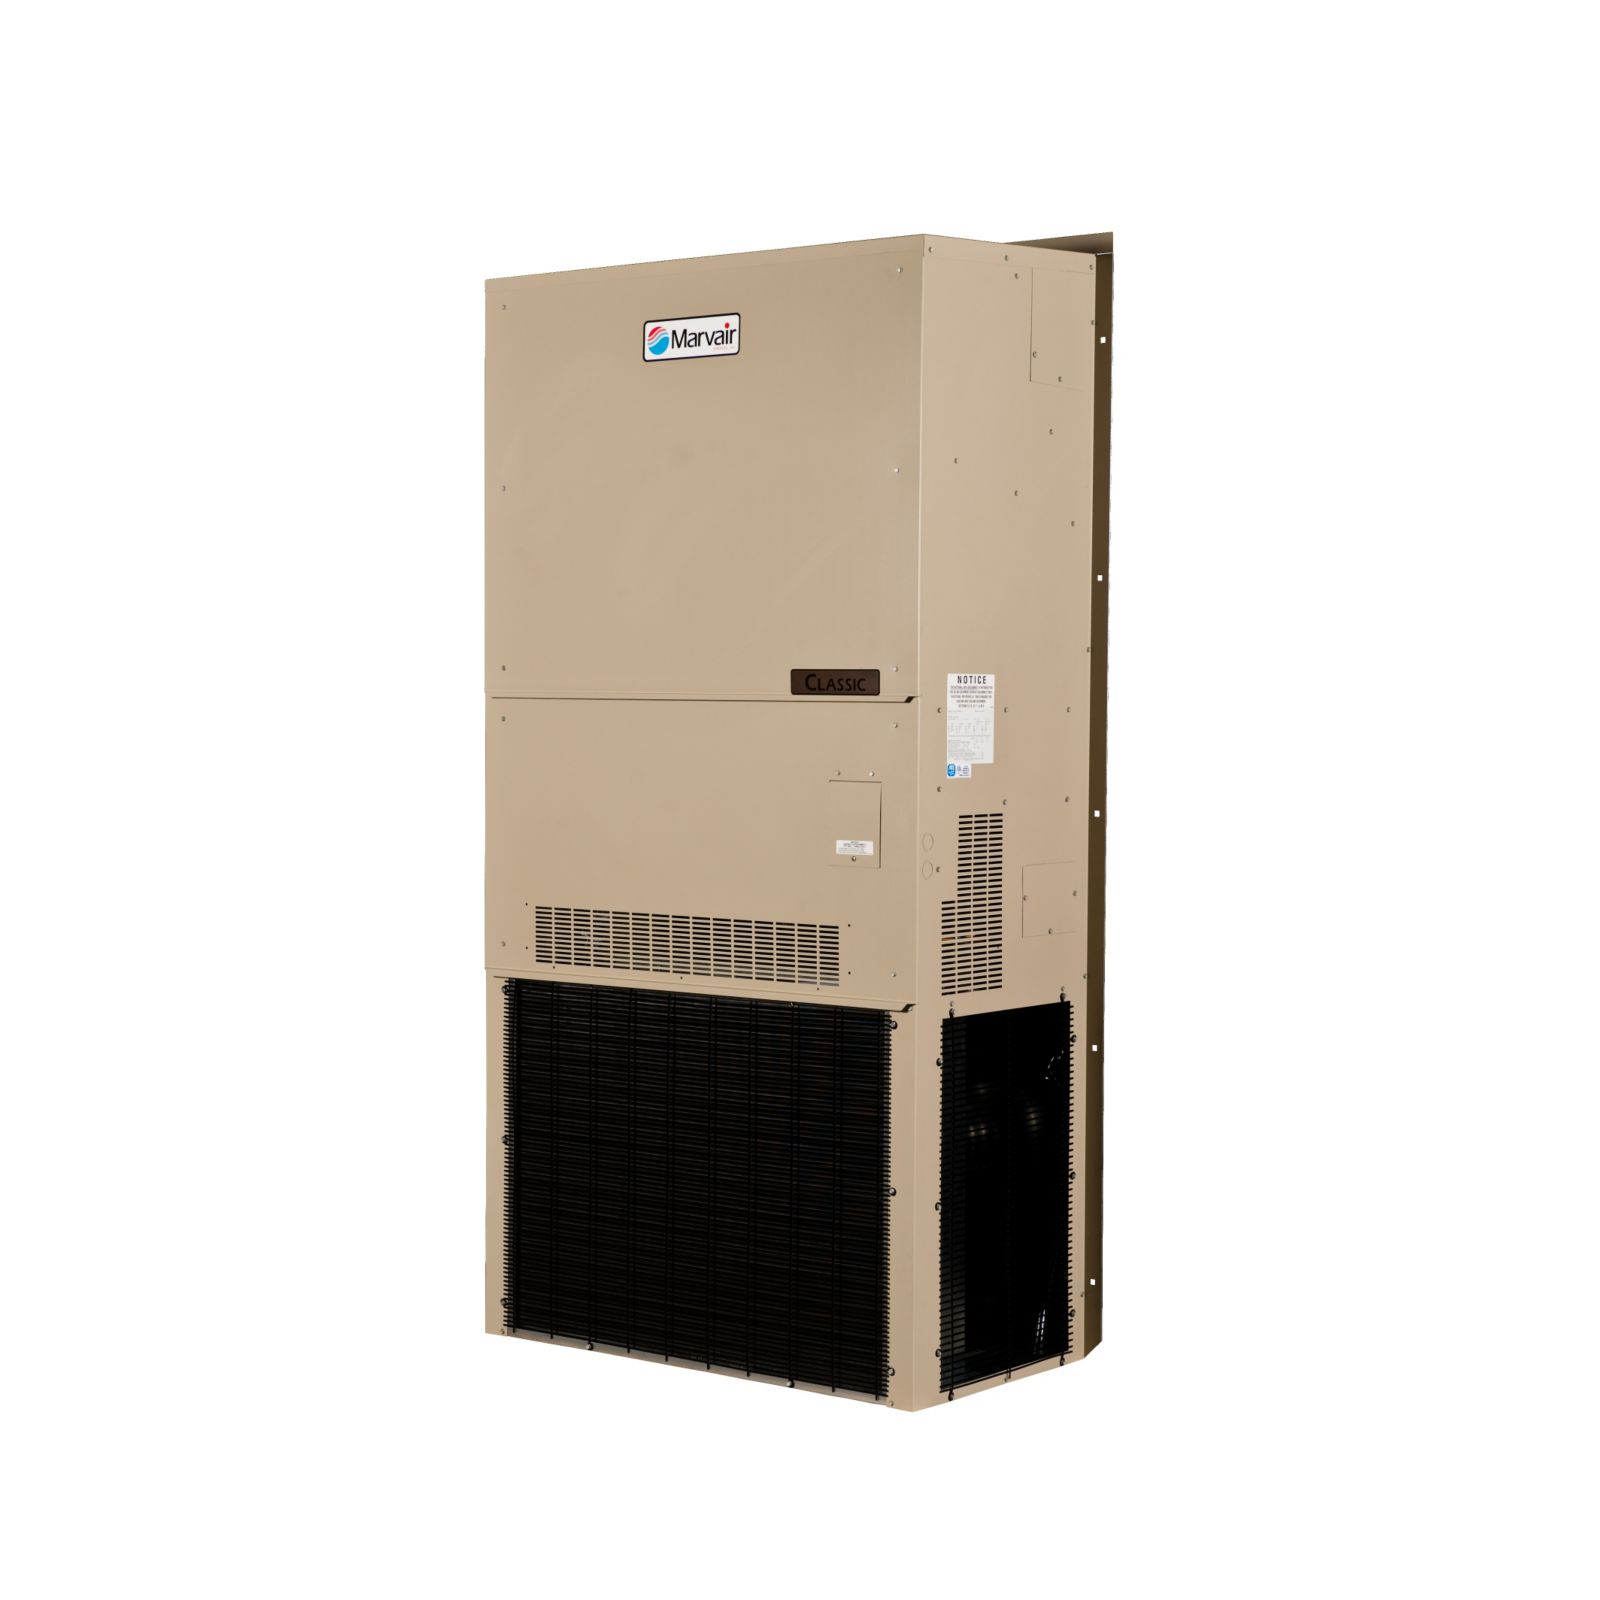 Marvair AVPA36HPA100NU-A2-100 - 3 Ton Classic, Wall Mount Heat Pump, 10 kW Electric Heat, Manual Damper, Scroll Compressor